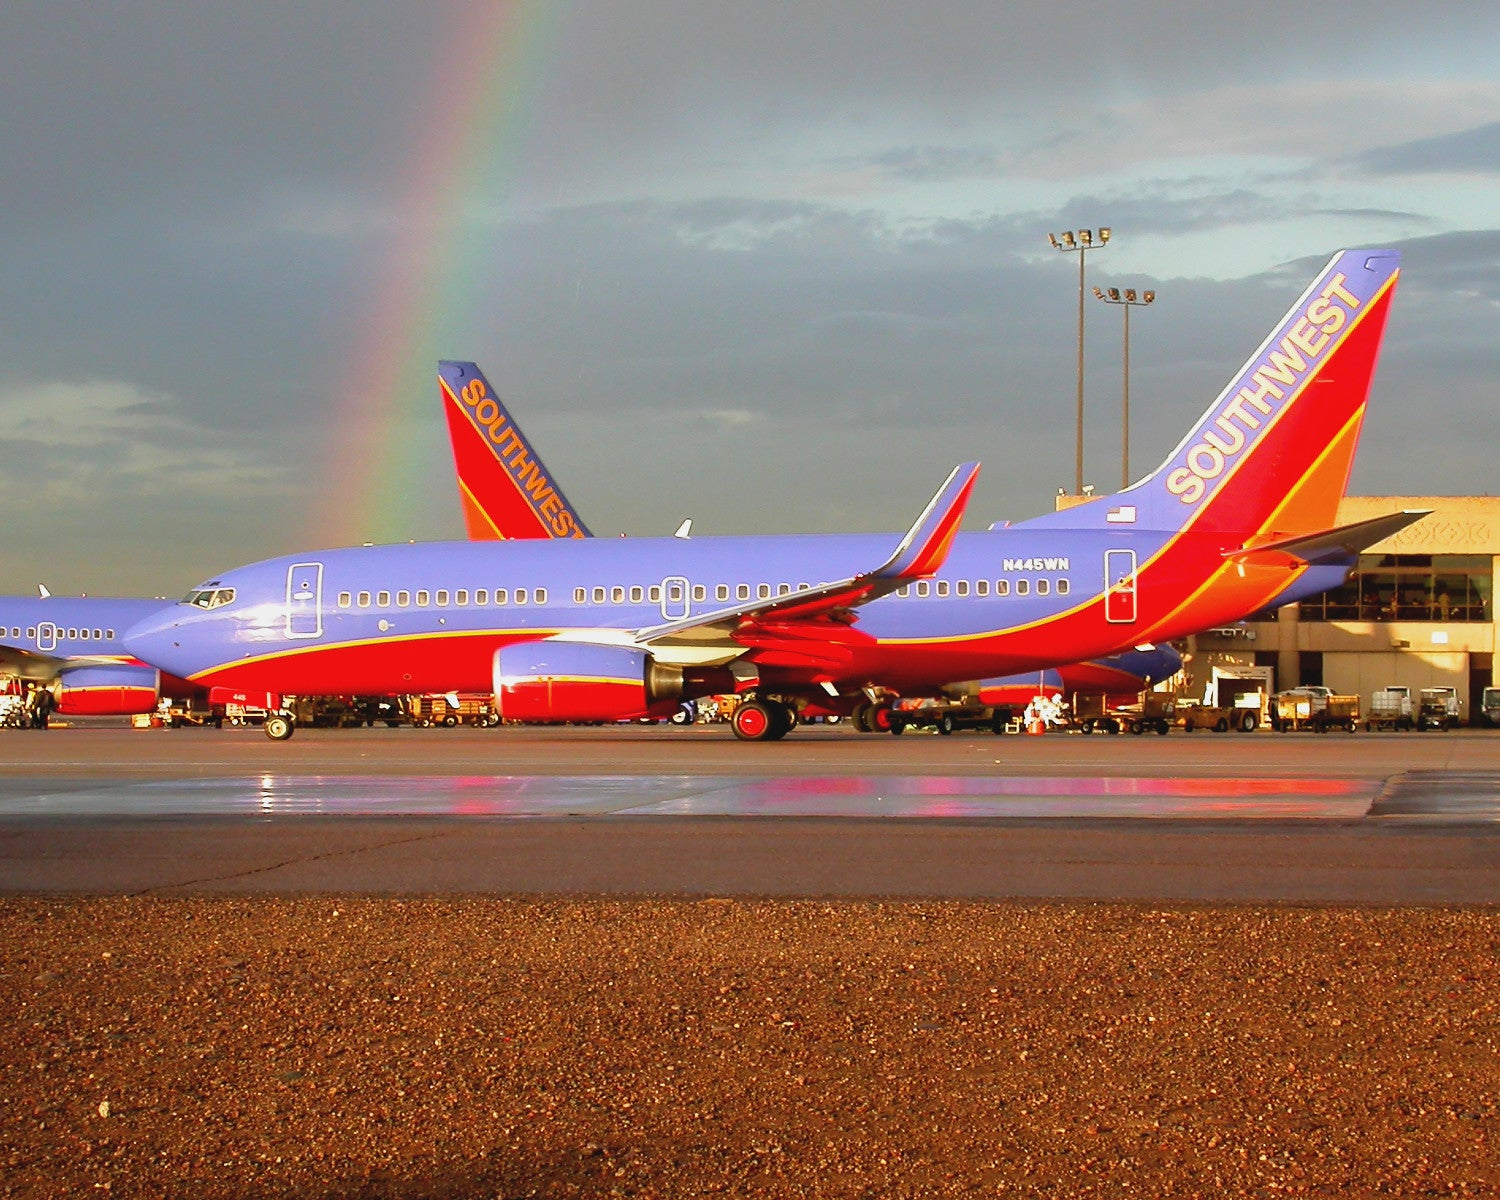 It's Back! You Can Book Southwest Flights With Chase Ultimate Rewards Points